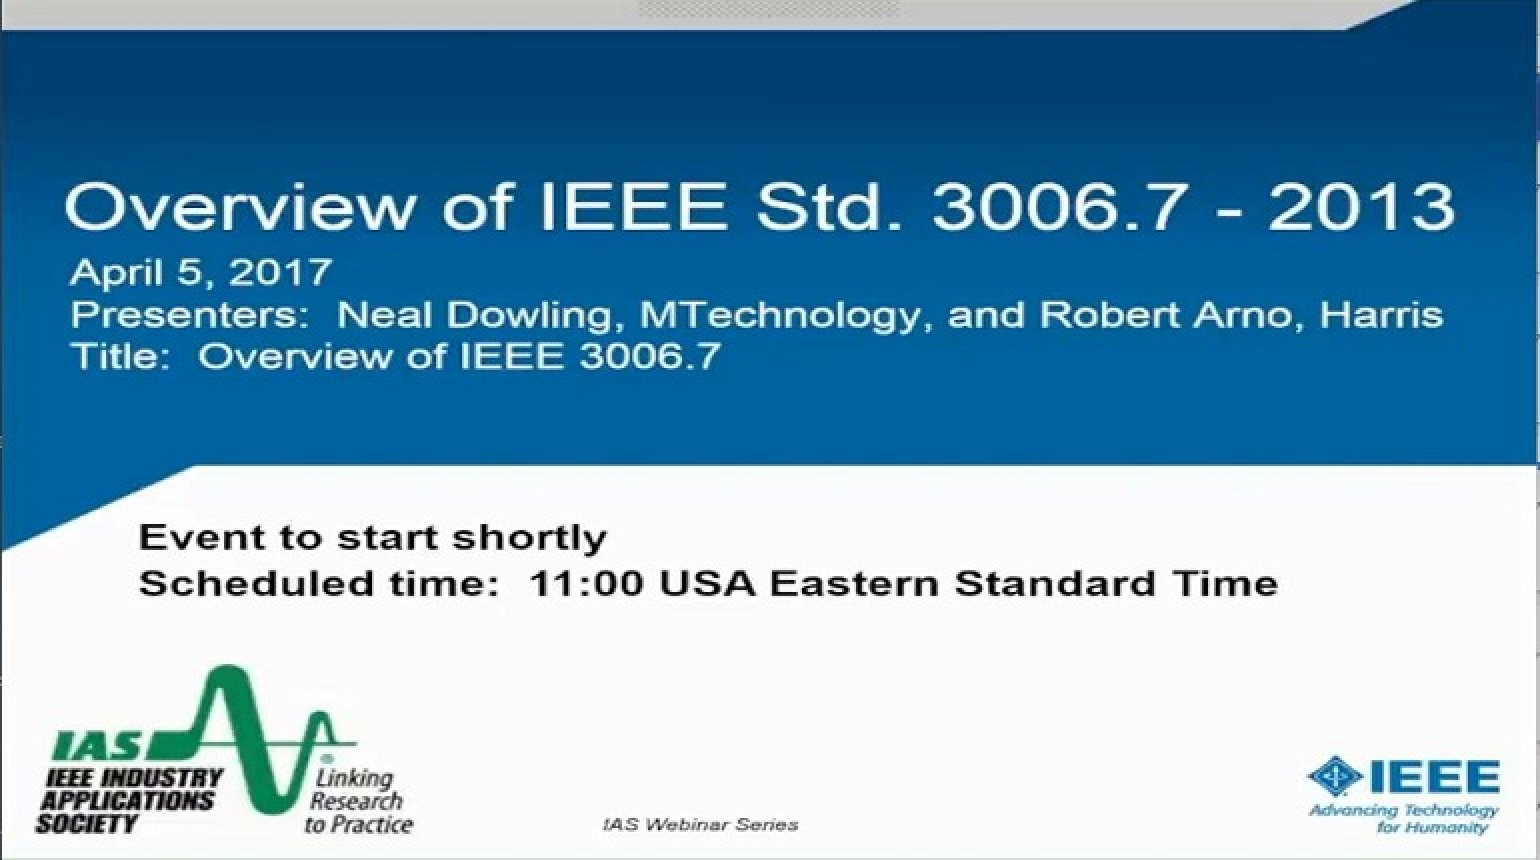 IAS Webinar Series - Overview of IEEE 3006.7